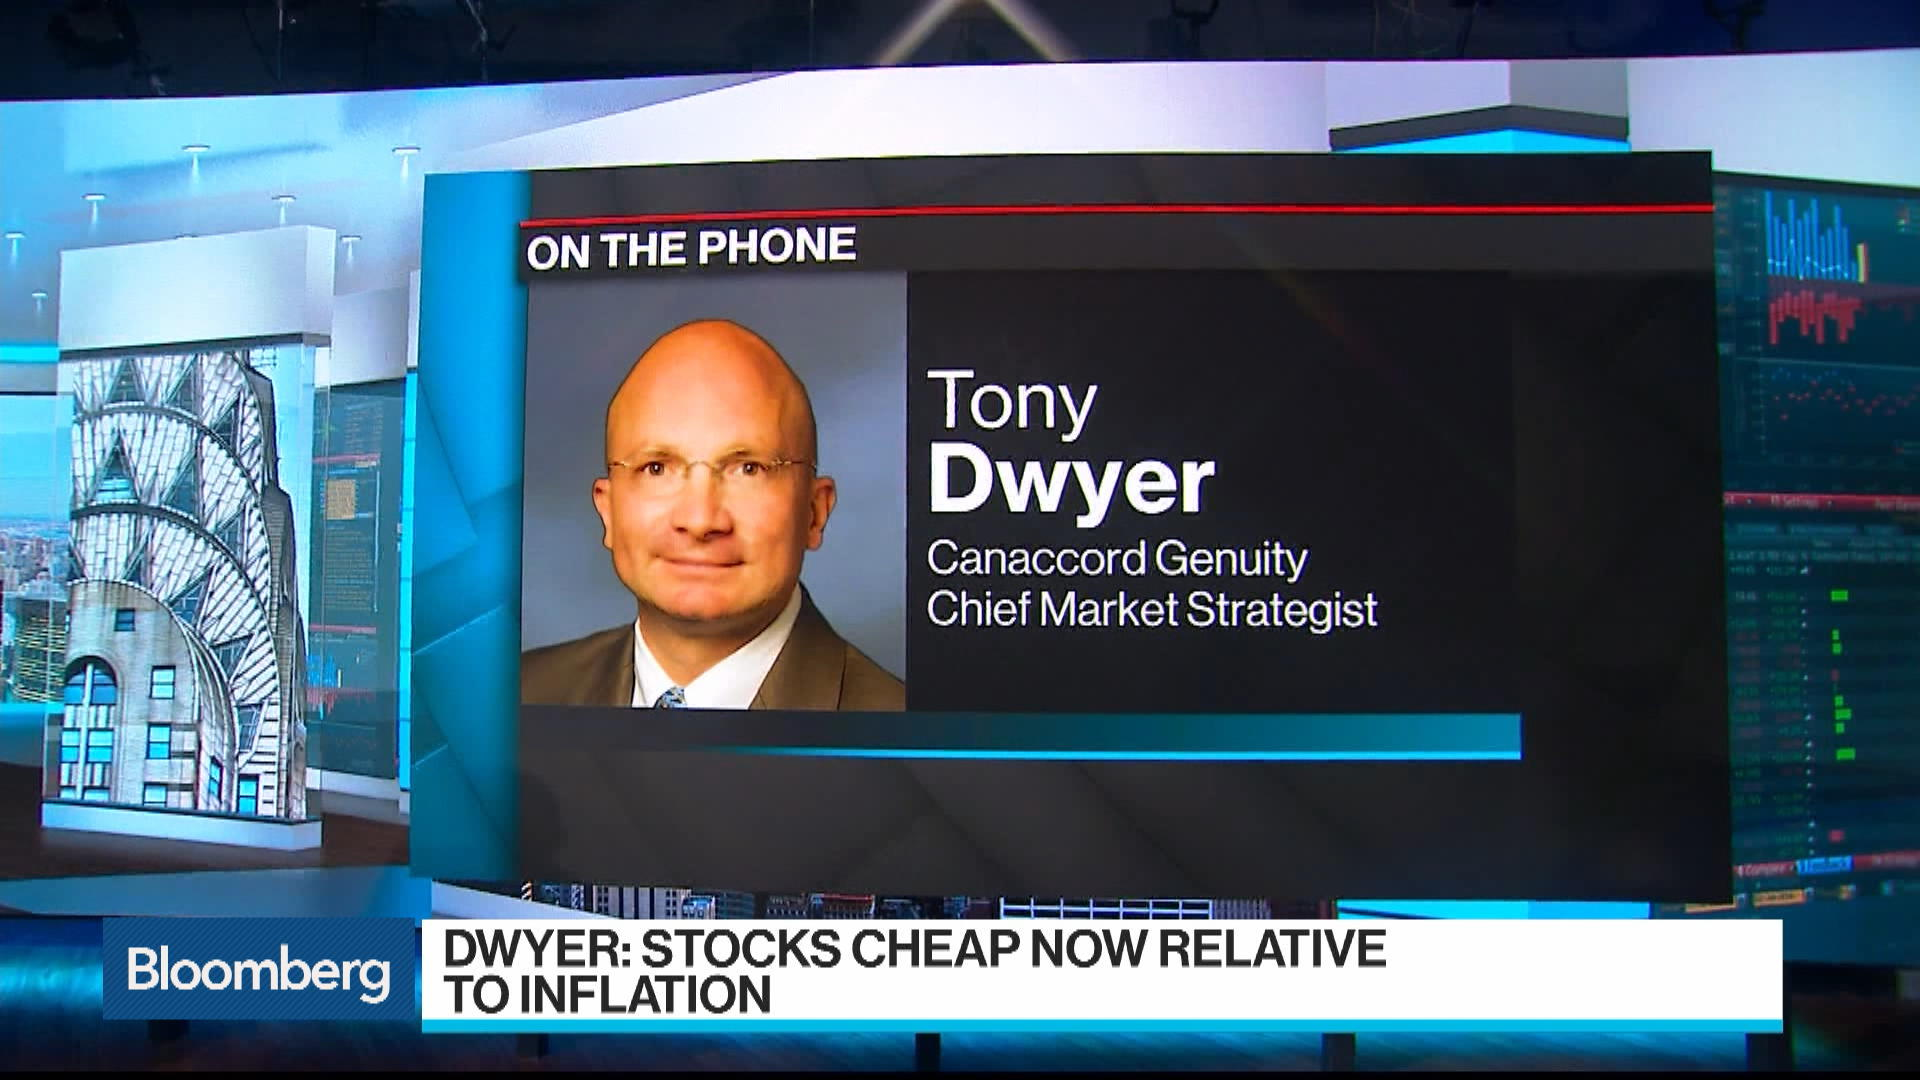 Markets: Stocks Are Cheap Right Now Relative to Inflation, Canaccord's Dwyer Says